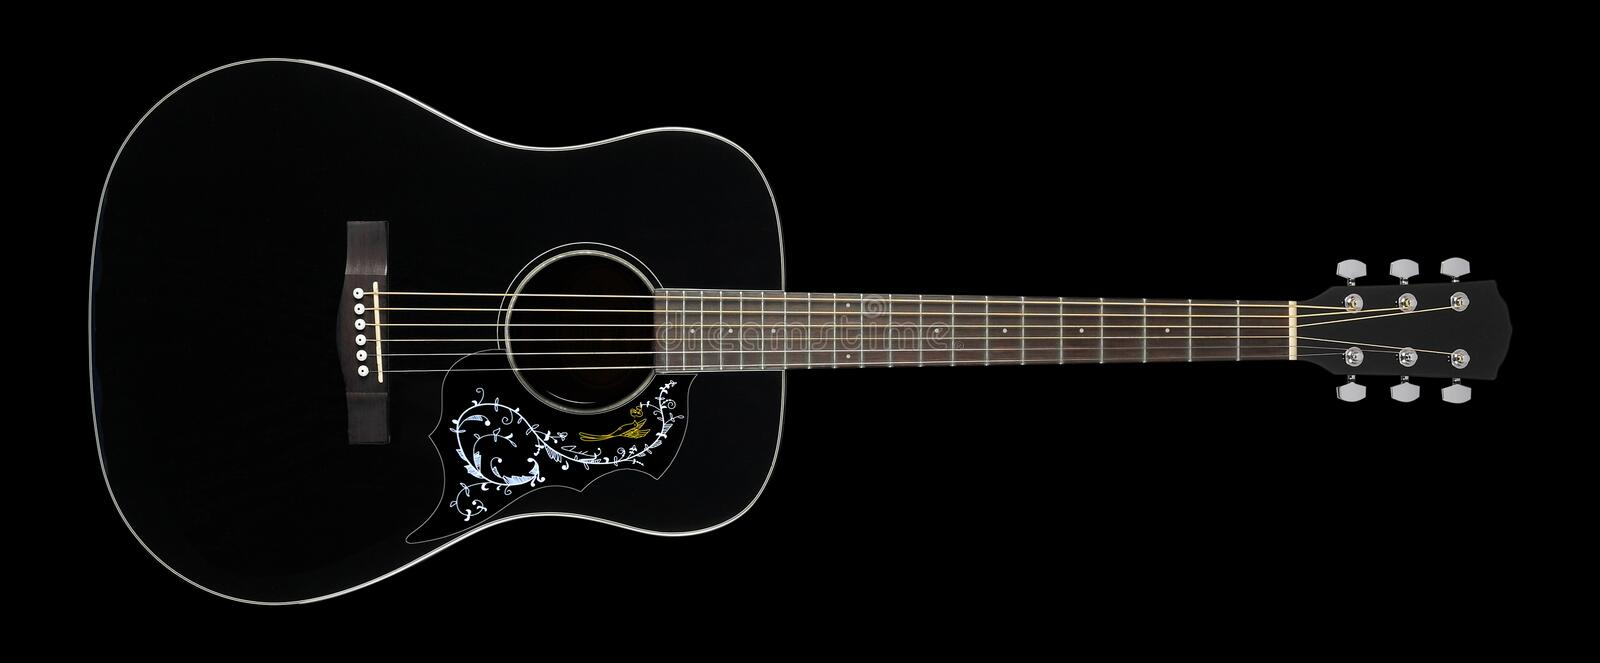 Musical instrument - Black folk acoustic guitar country flower b. Ird pickguard on a black background stock images